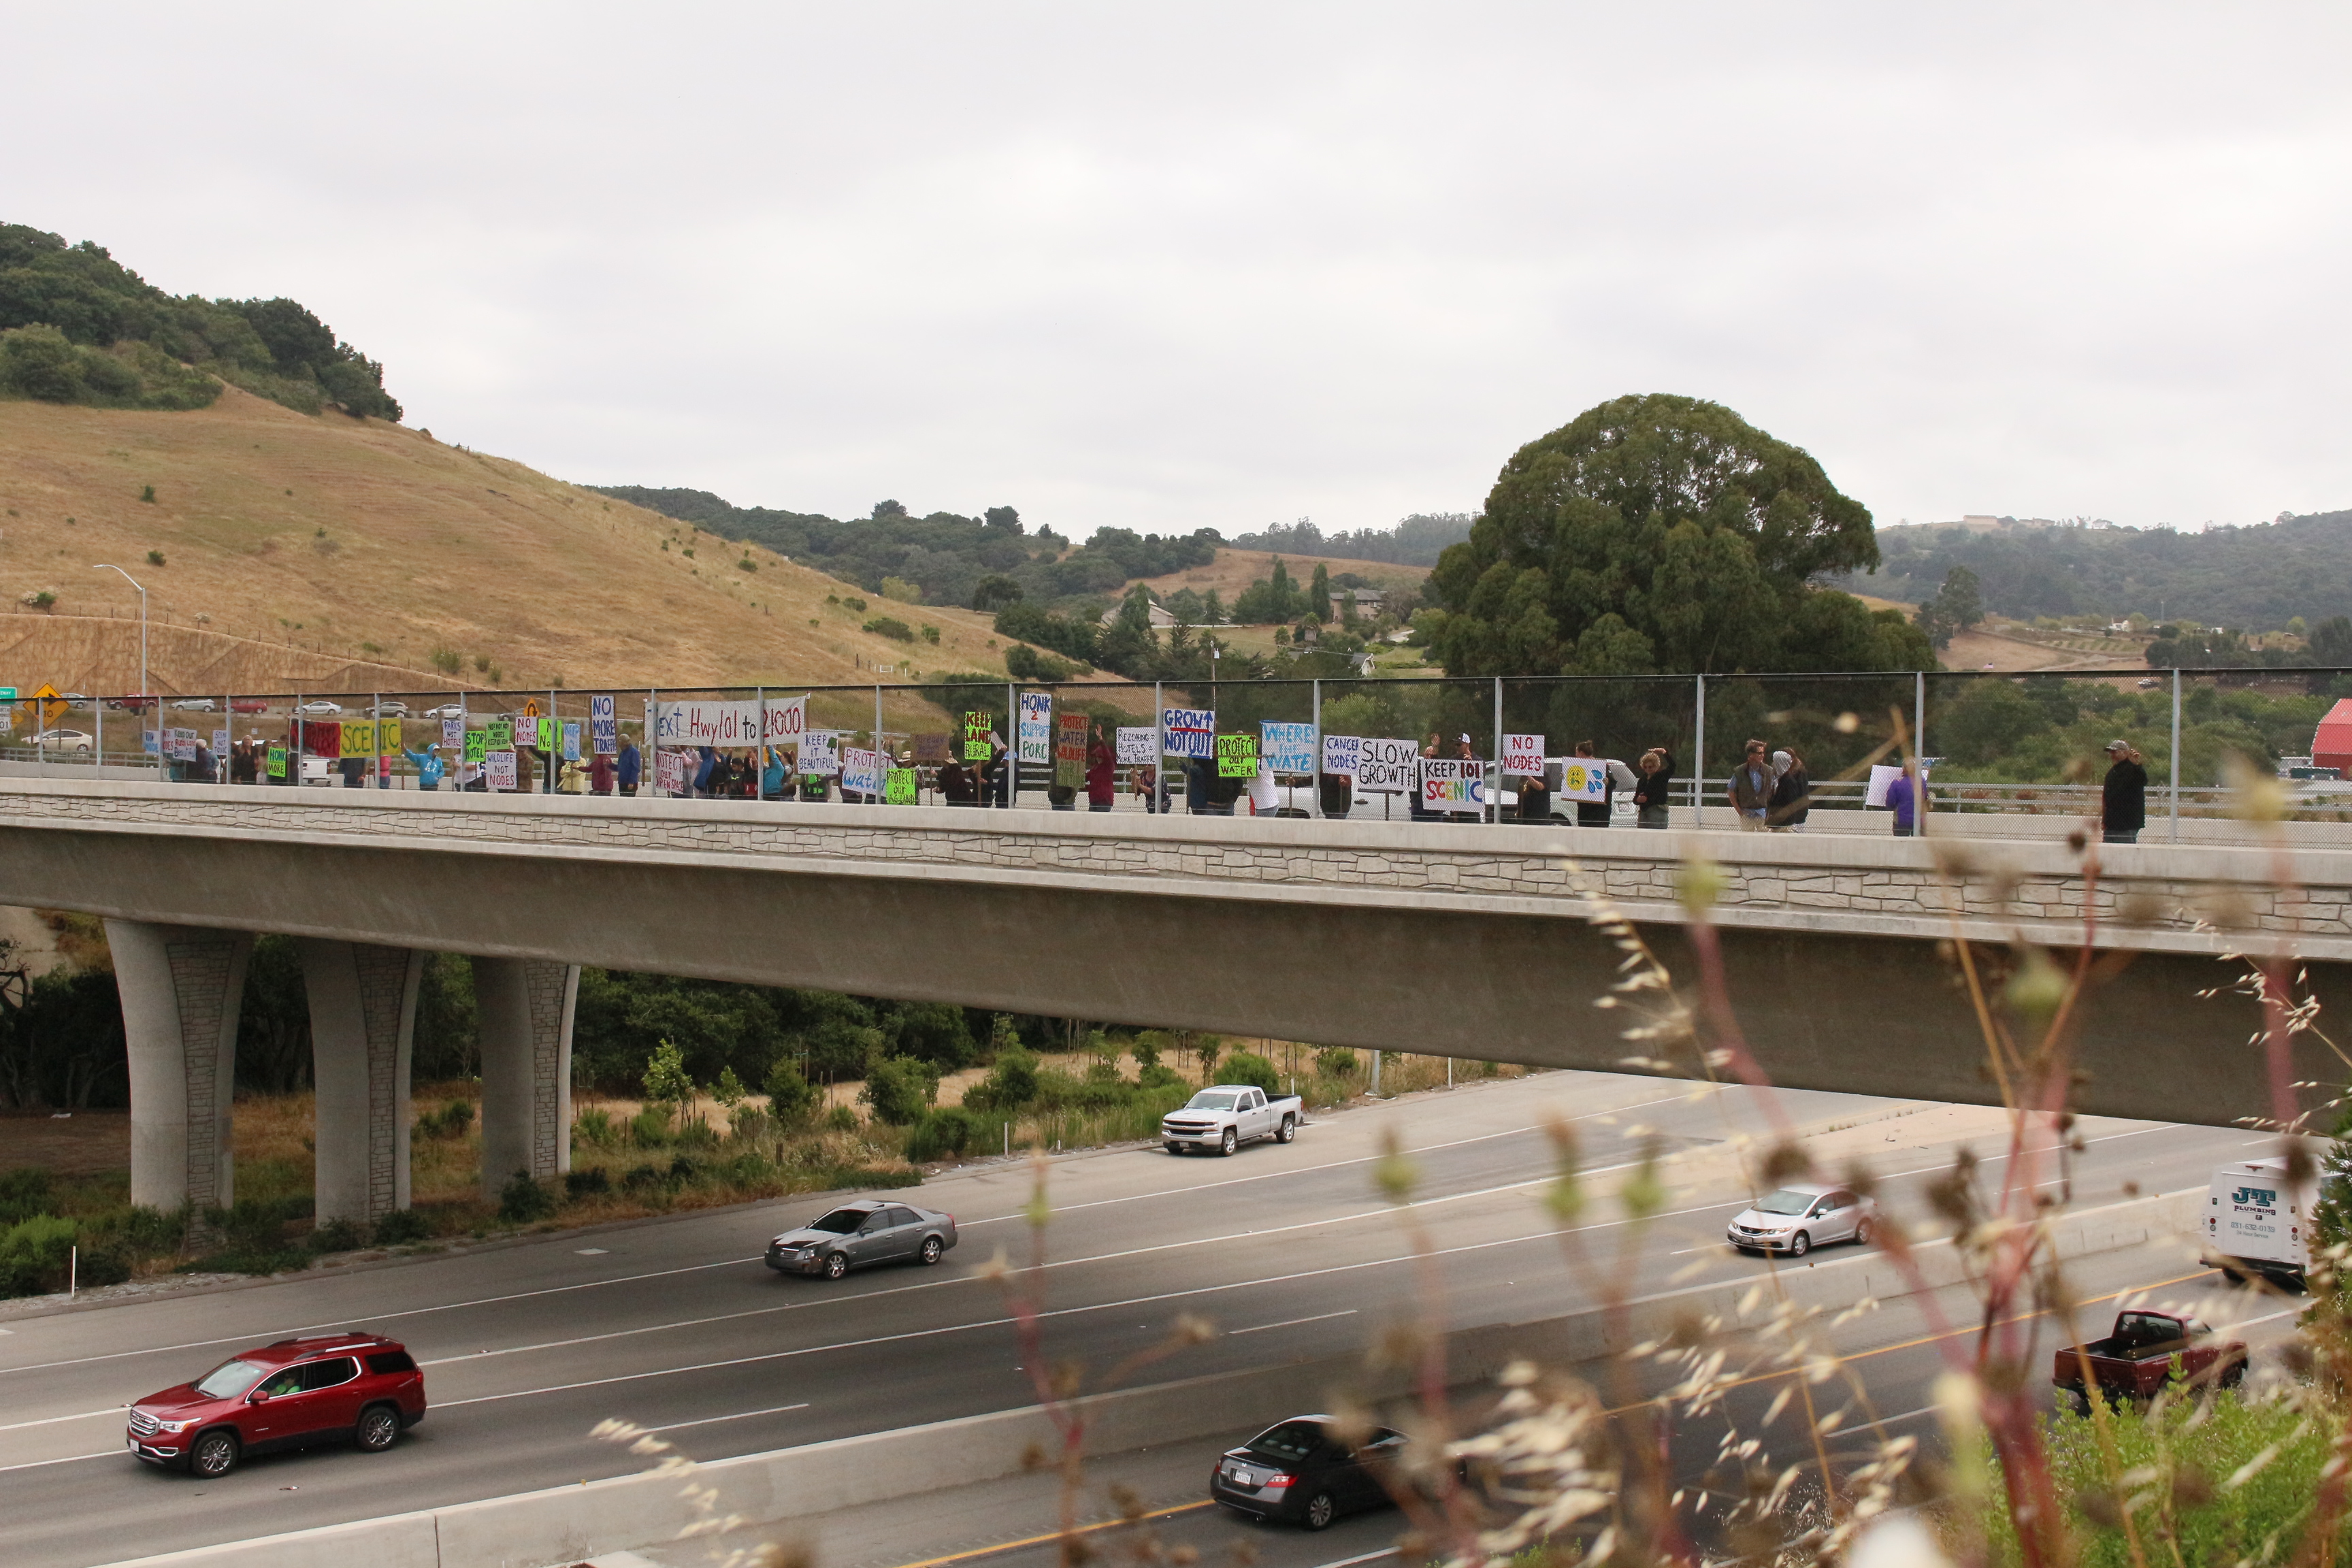 Protestors holding signs against commercial nodes on San Juan Road overpass. Photo by Noe Magaña.